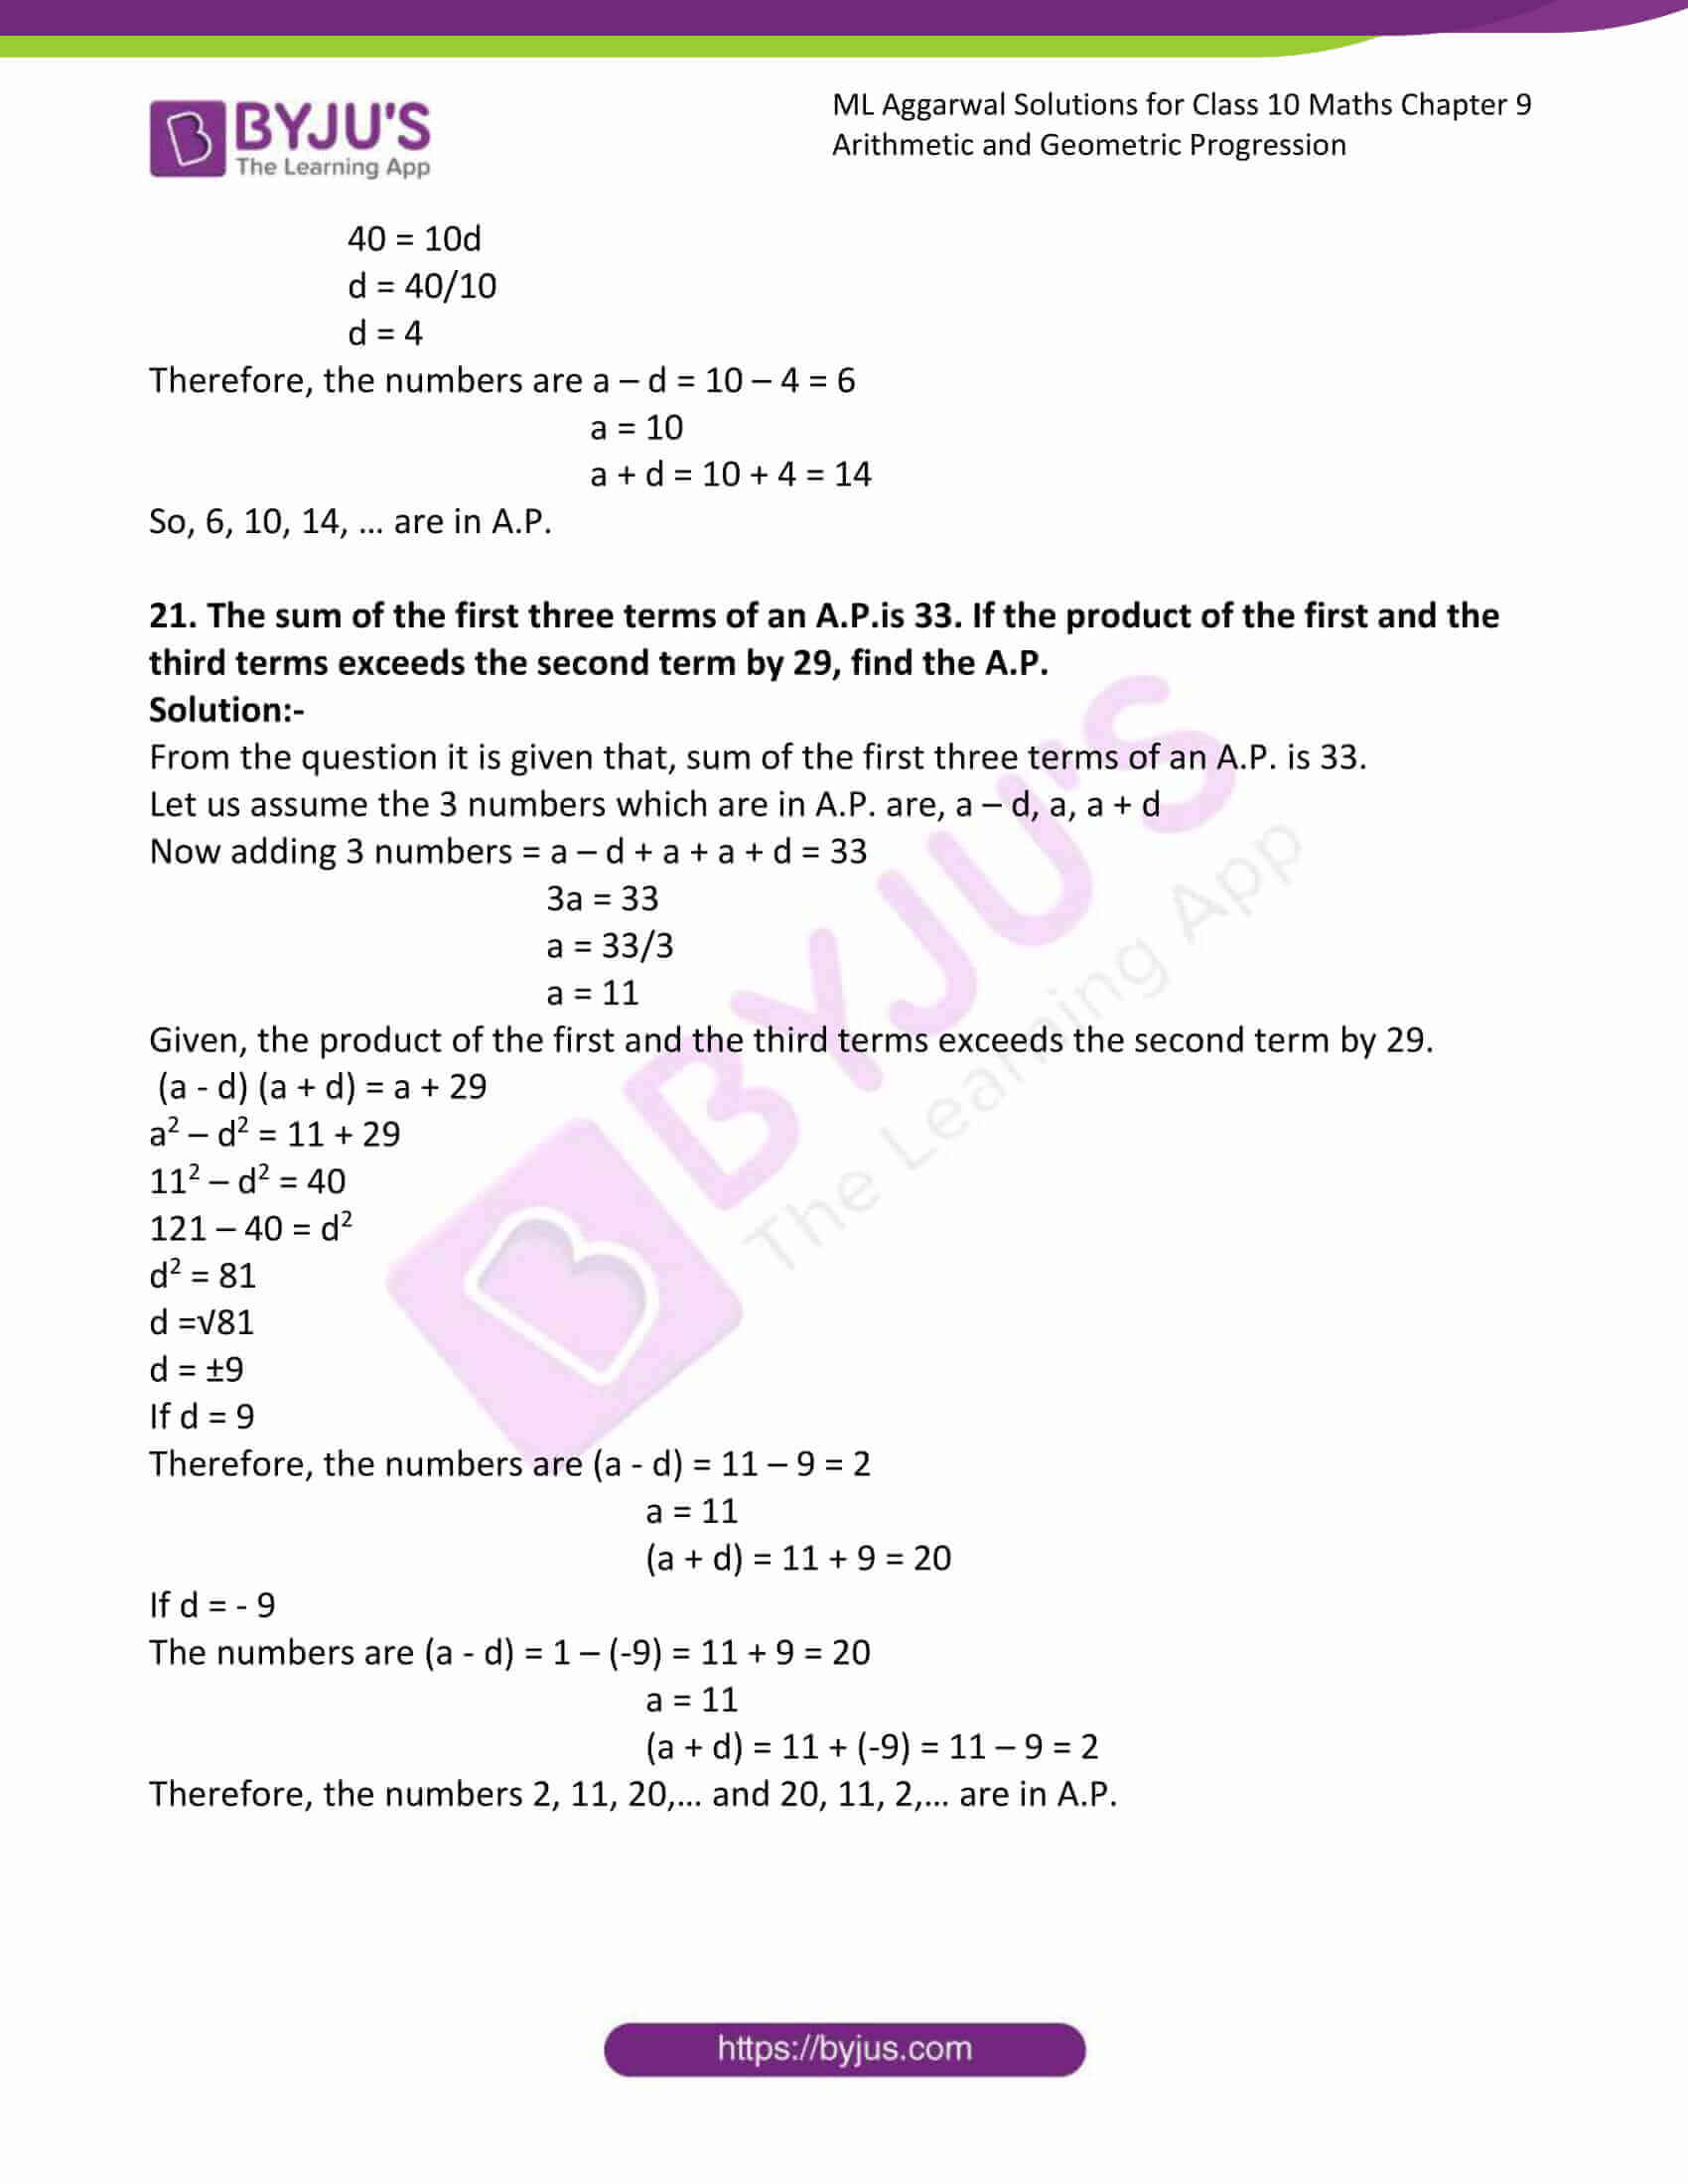 ml aggarwal solutions class 10 maths chapter 9 20